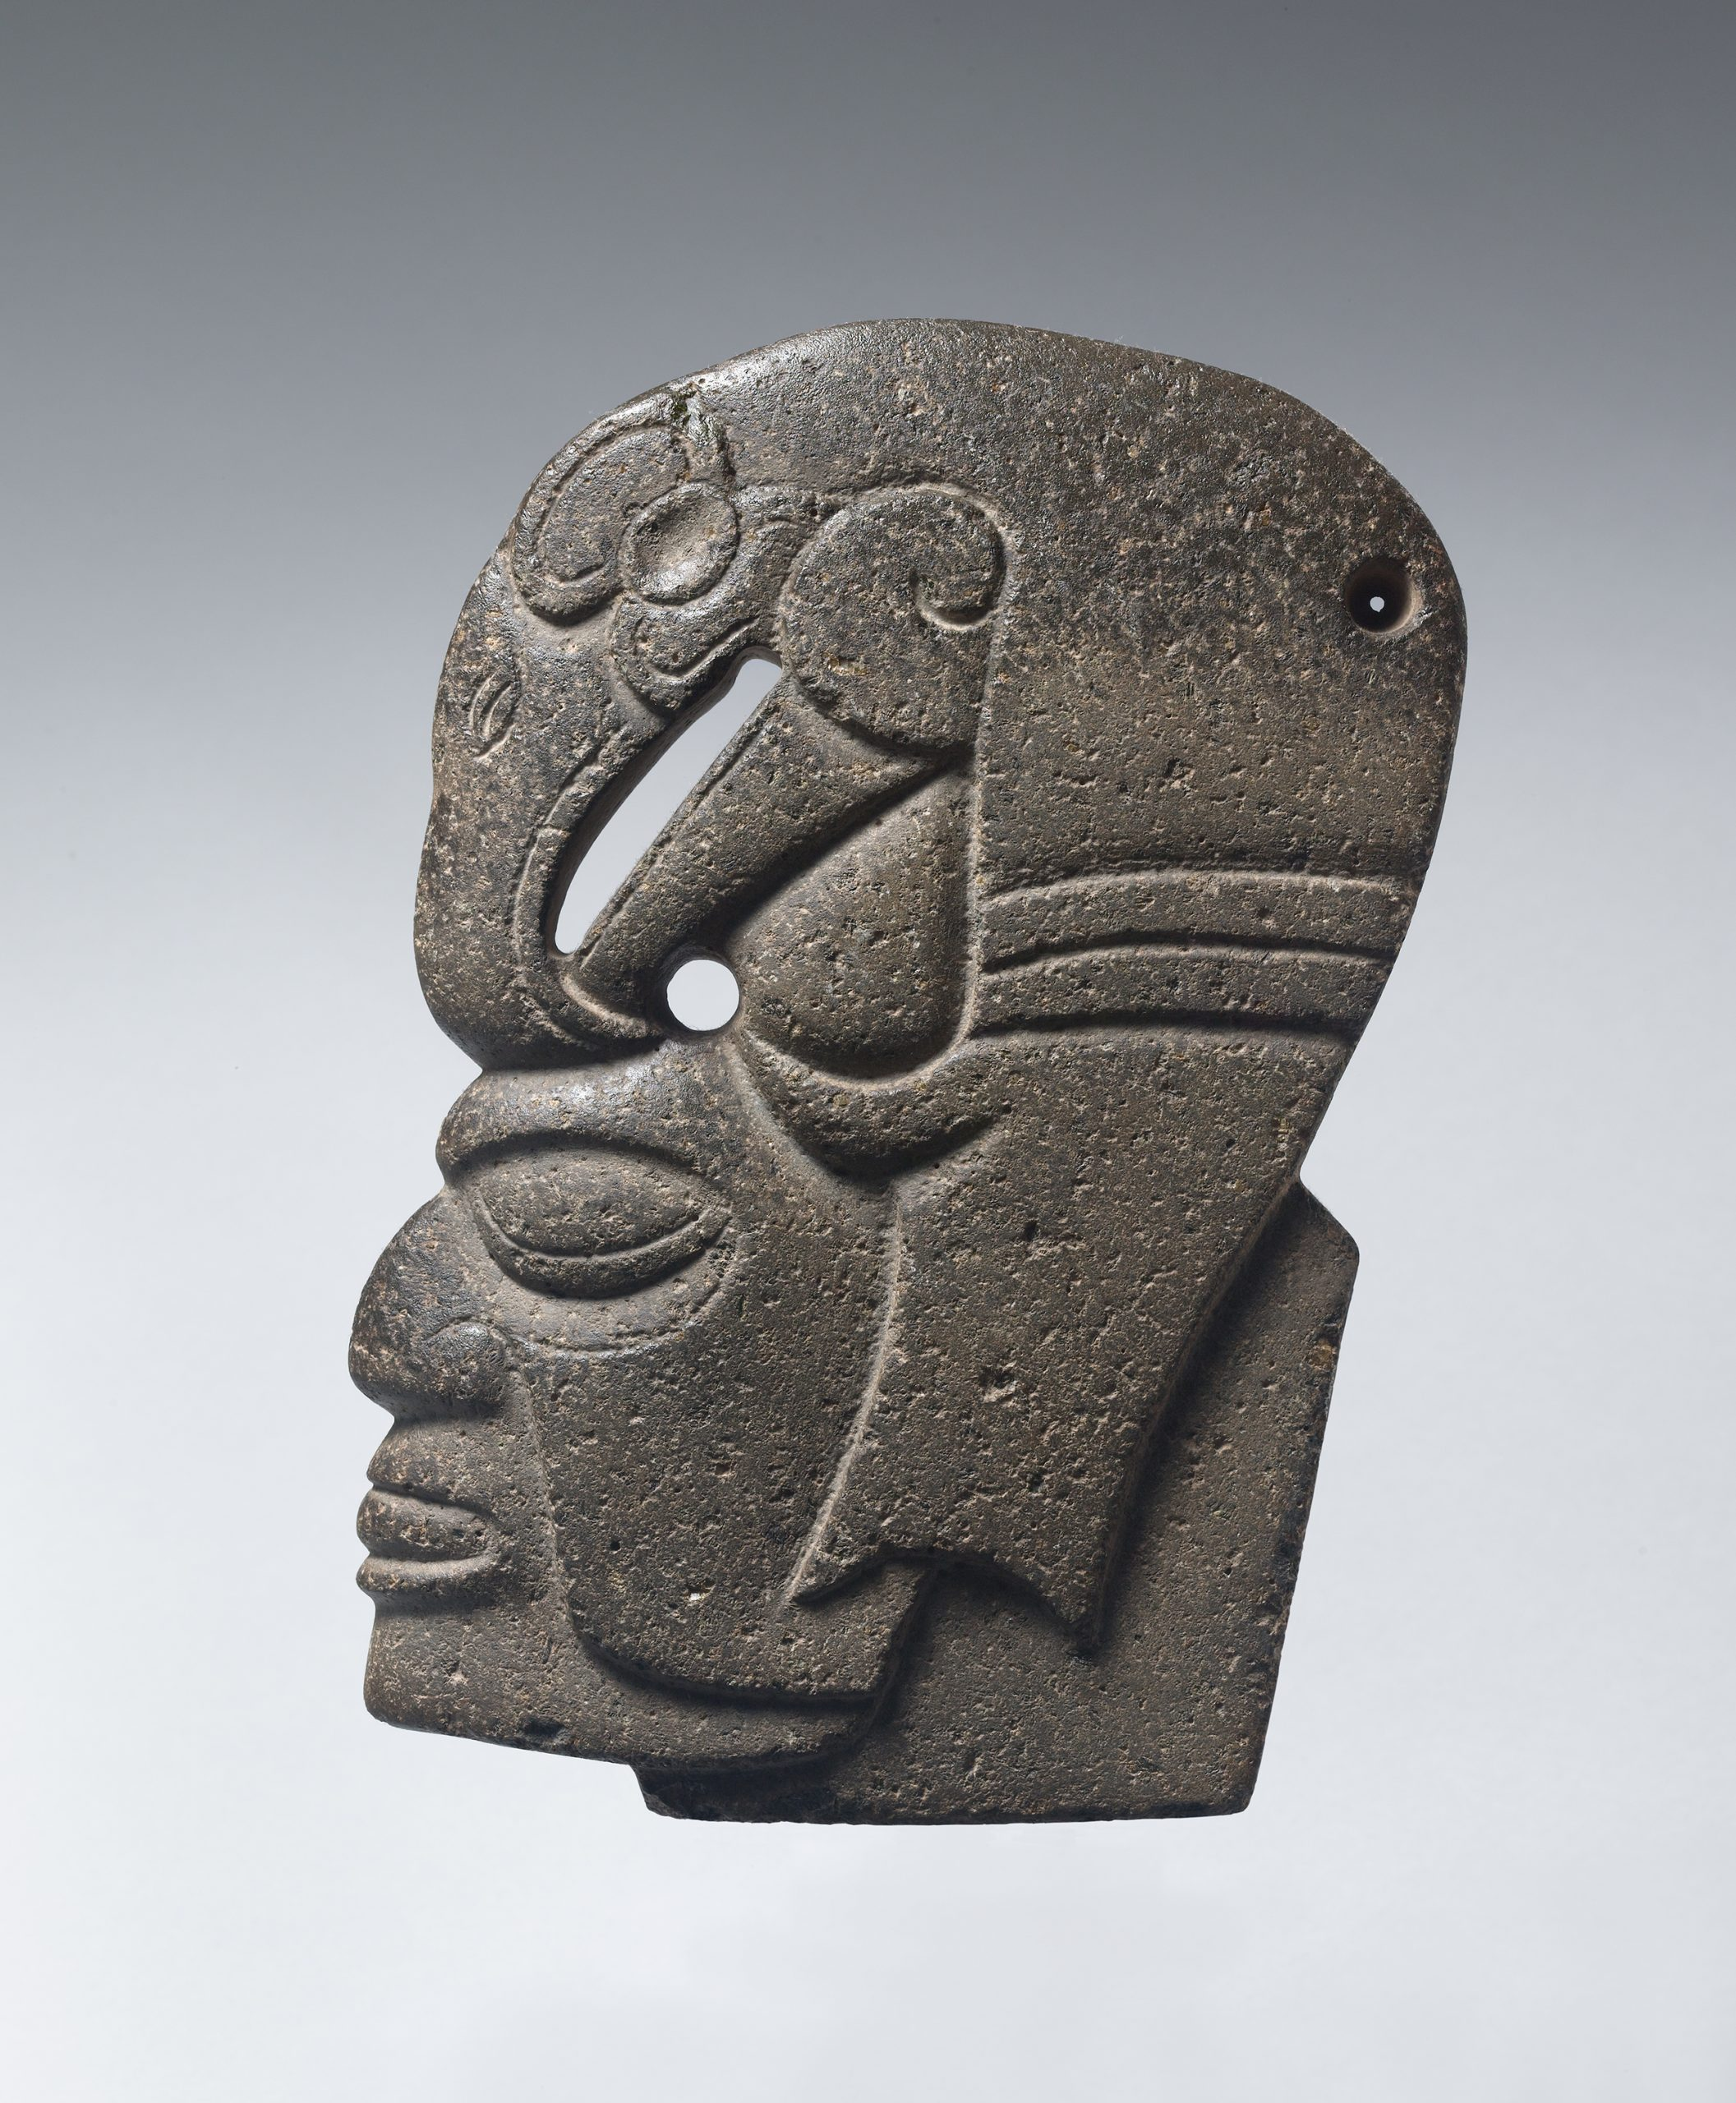 Stone sculpture of an abstracted standing figure with carved facial features and arms at the torso.